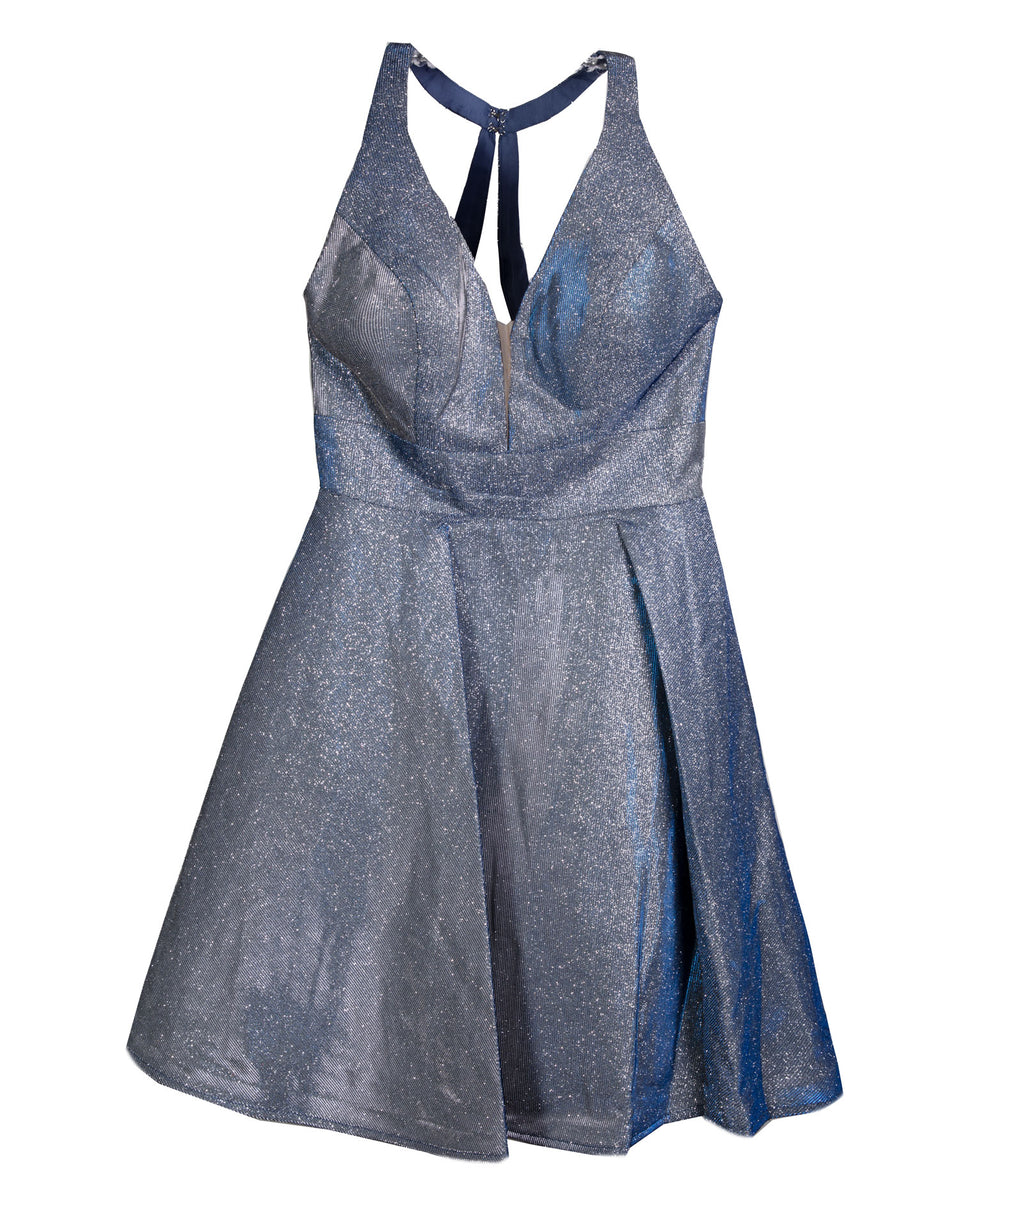 Alyce Women Starry Blue Shimmer Dress